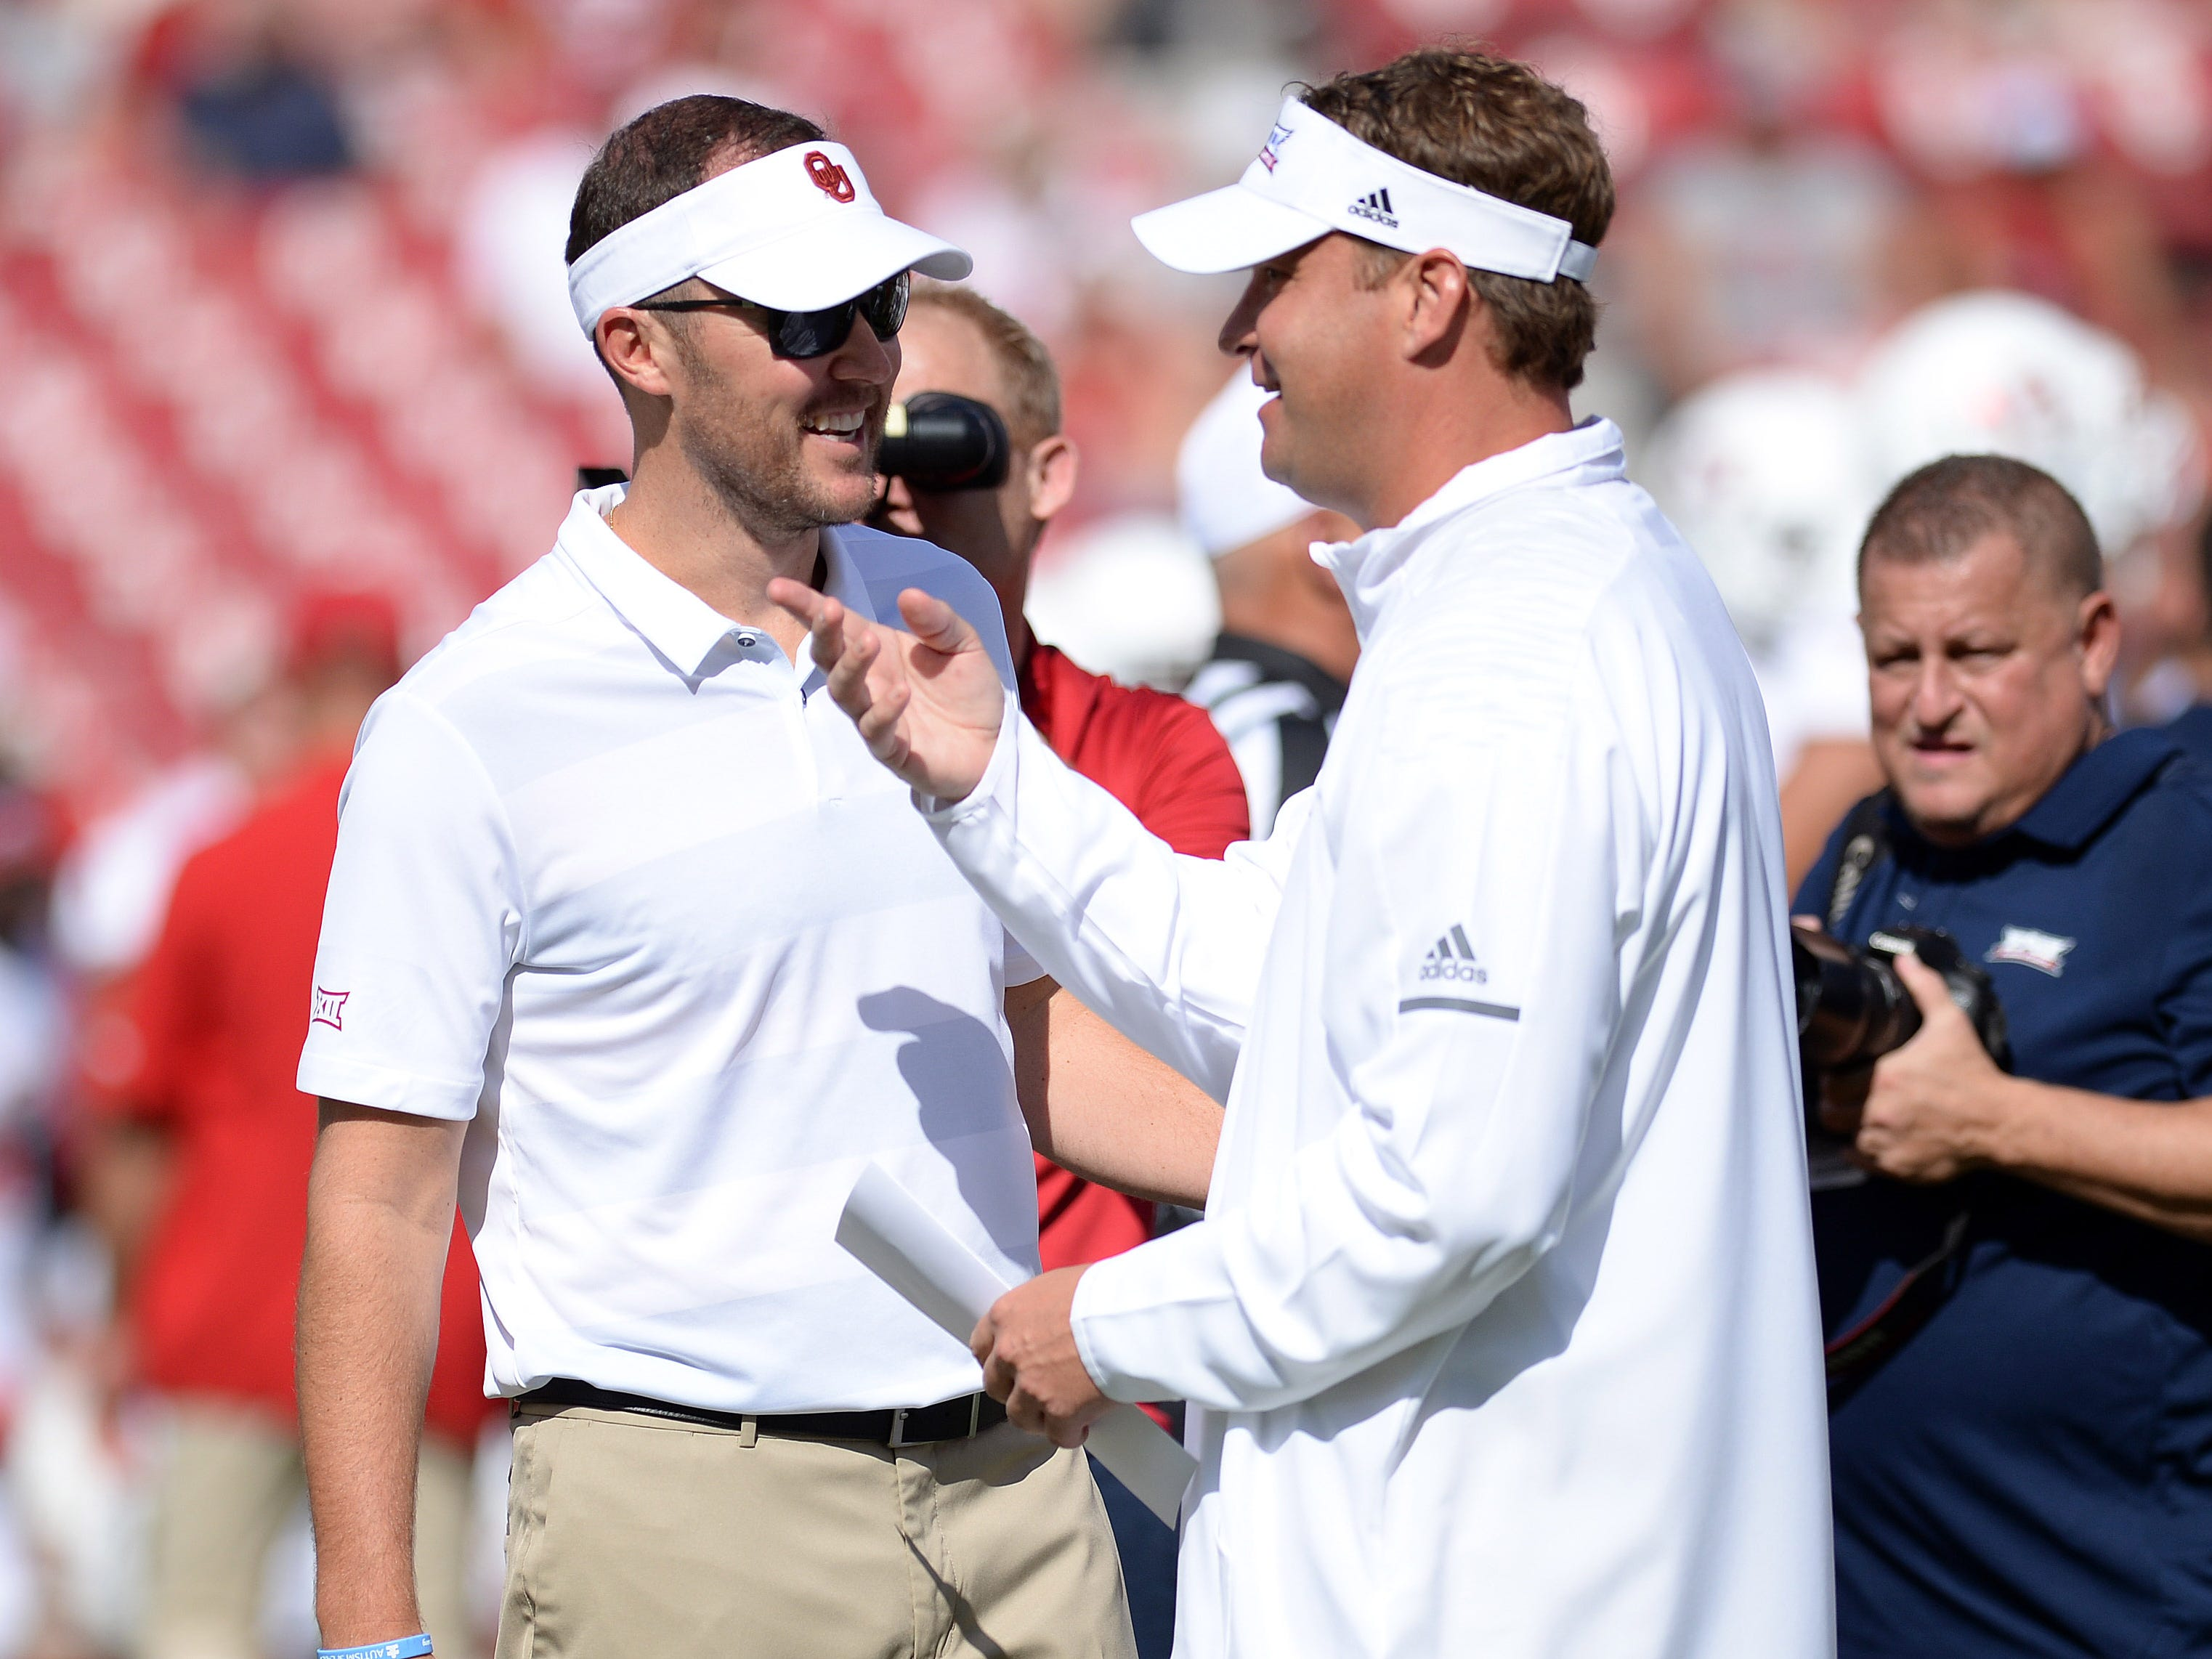 Oklahoma coach Lincoln Riley (left) greets Florida Atlantic coach Lane Kiffin pregame.